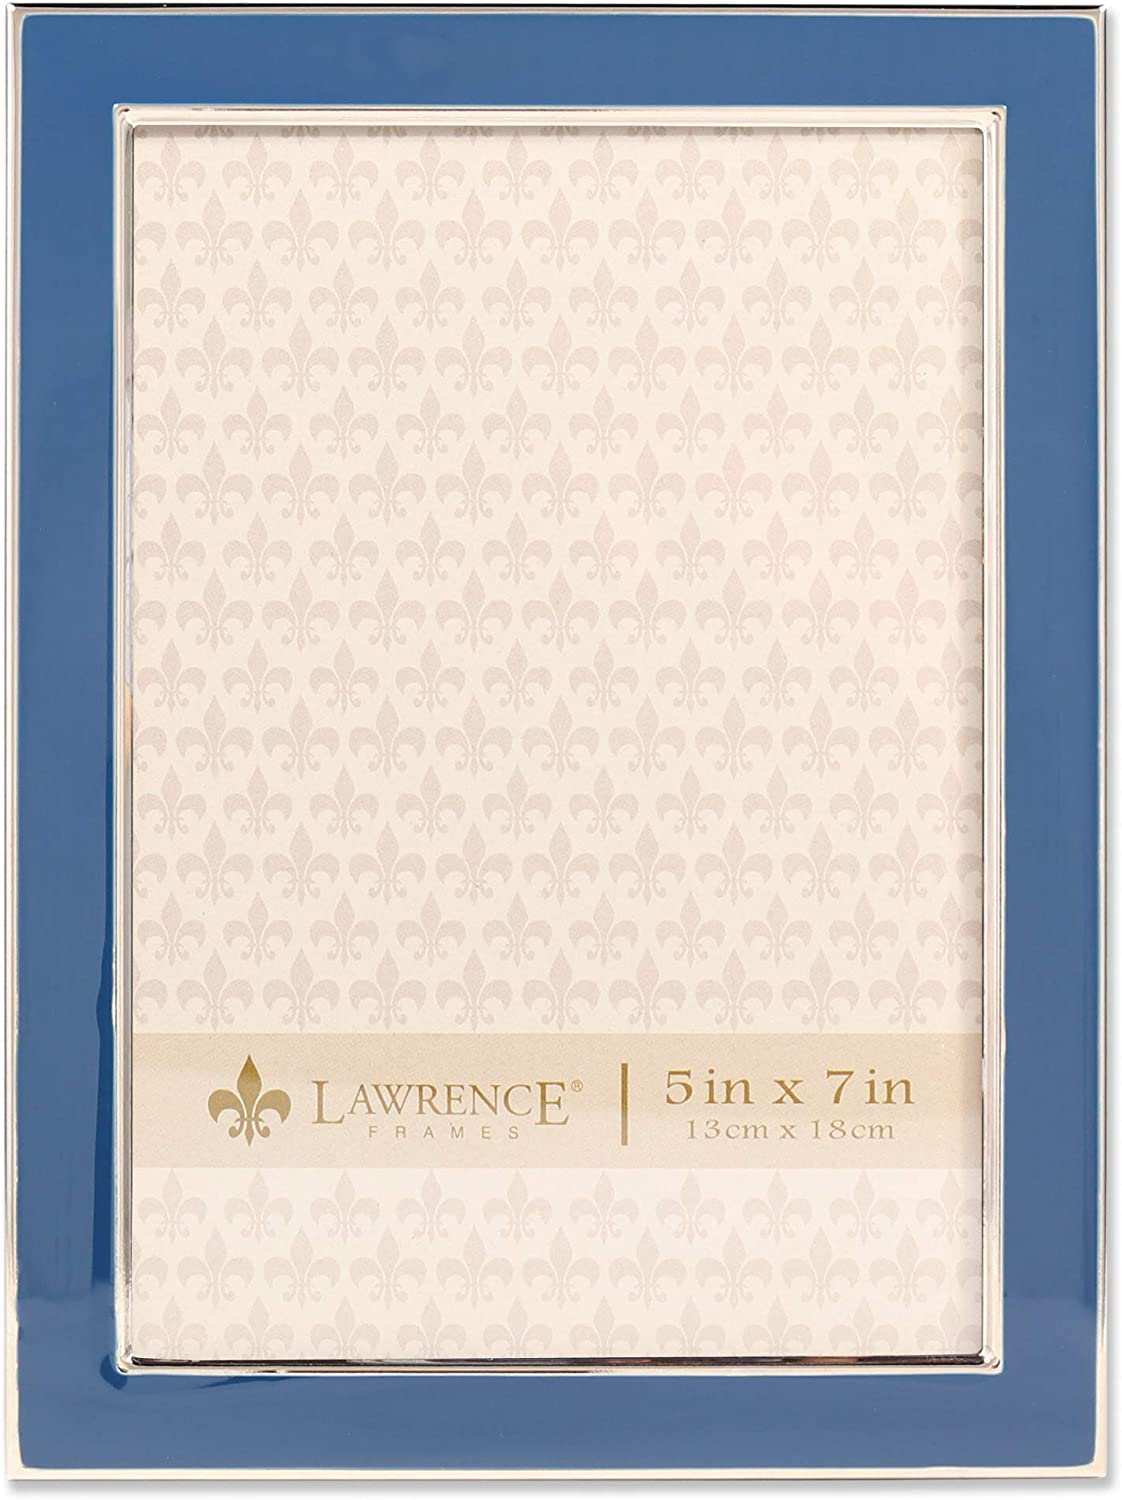 Lawrence Frames 586457 Clearance SALE Limited Manufacturer regenerated product time 5x7 Navy Picture Blue Enamel Frame